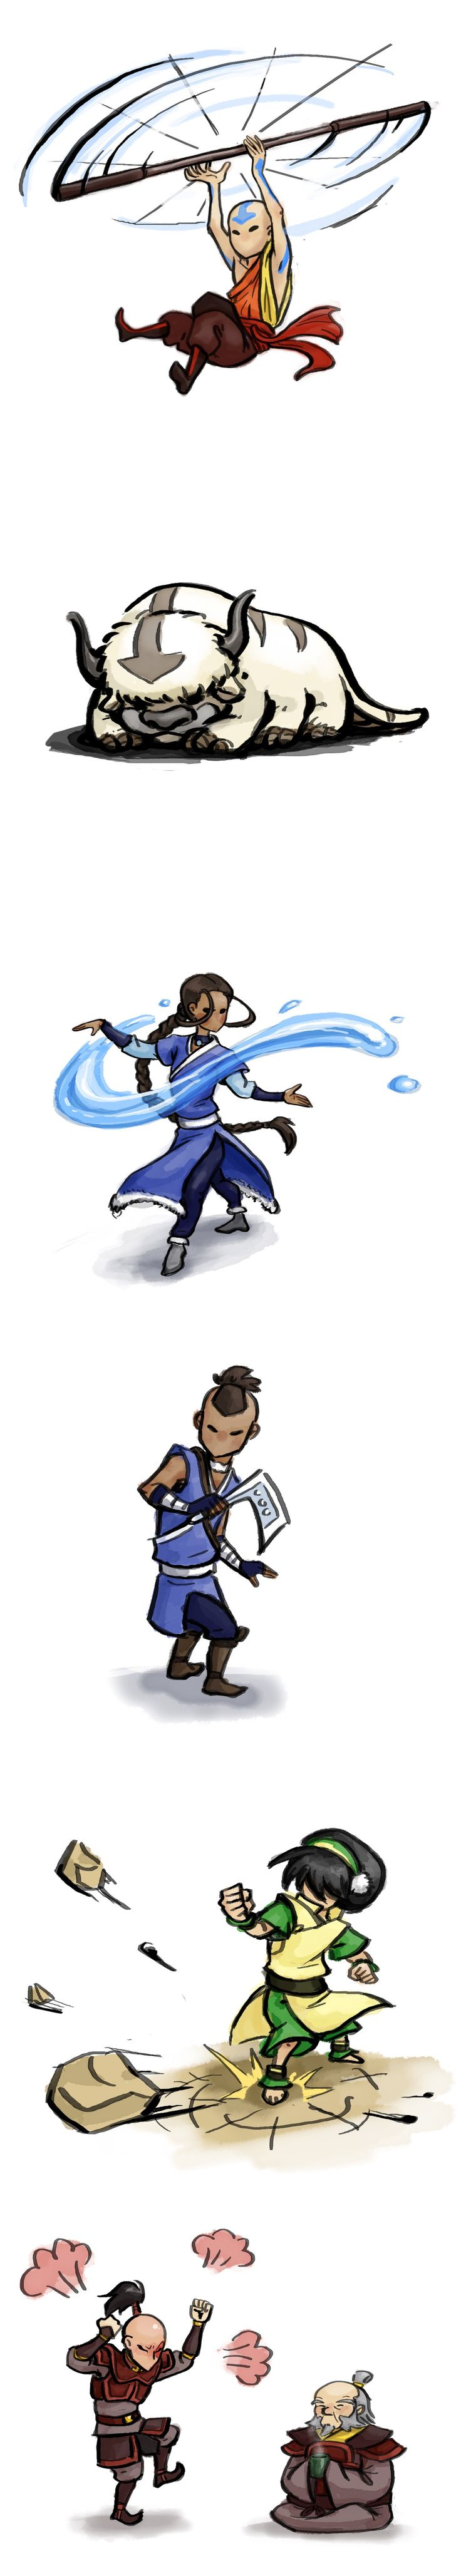 Some characters from Avatar: the Last Airbender in Okami style.